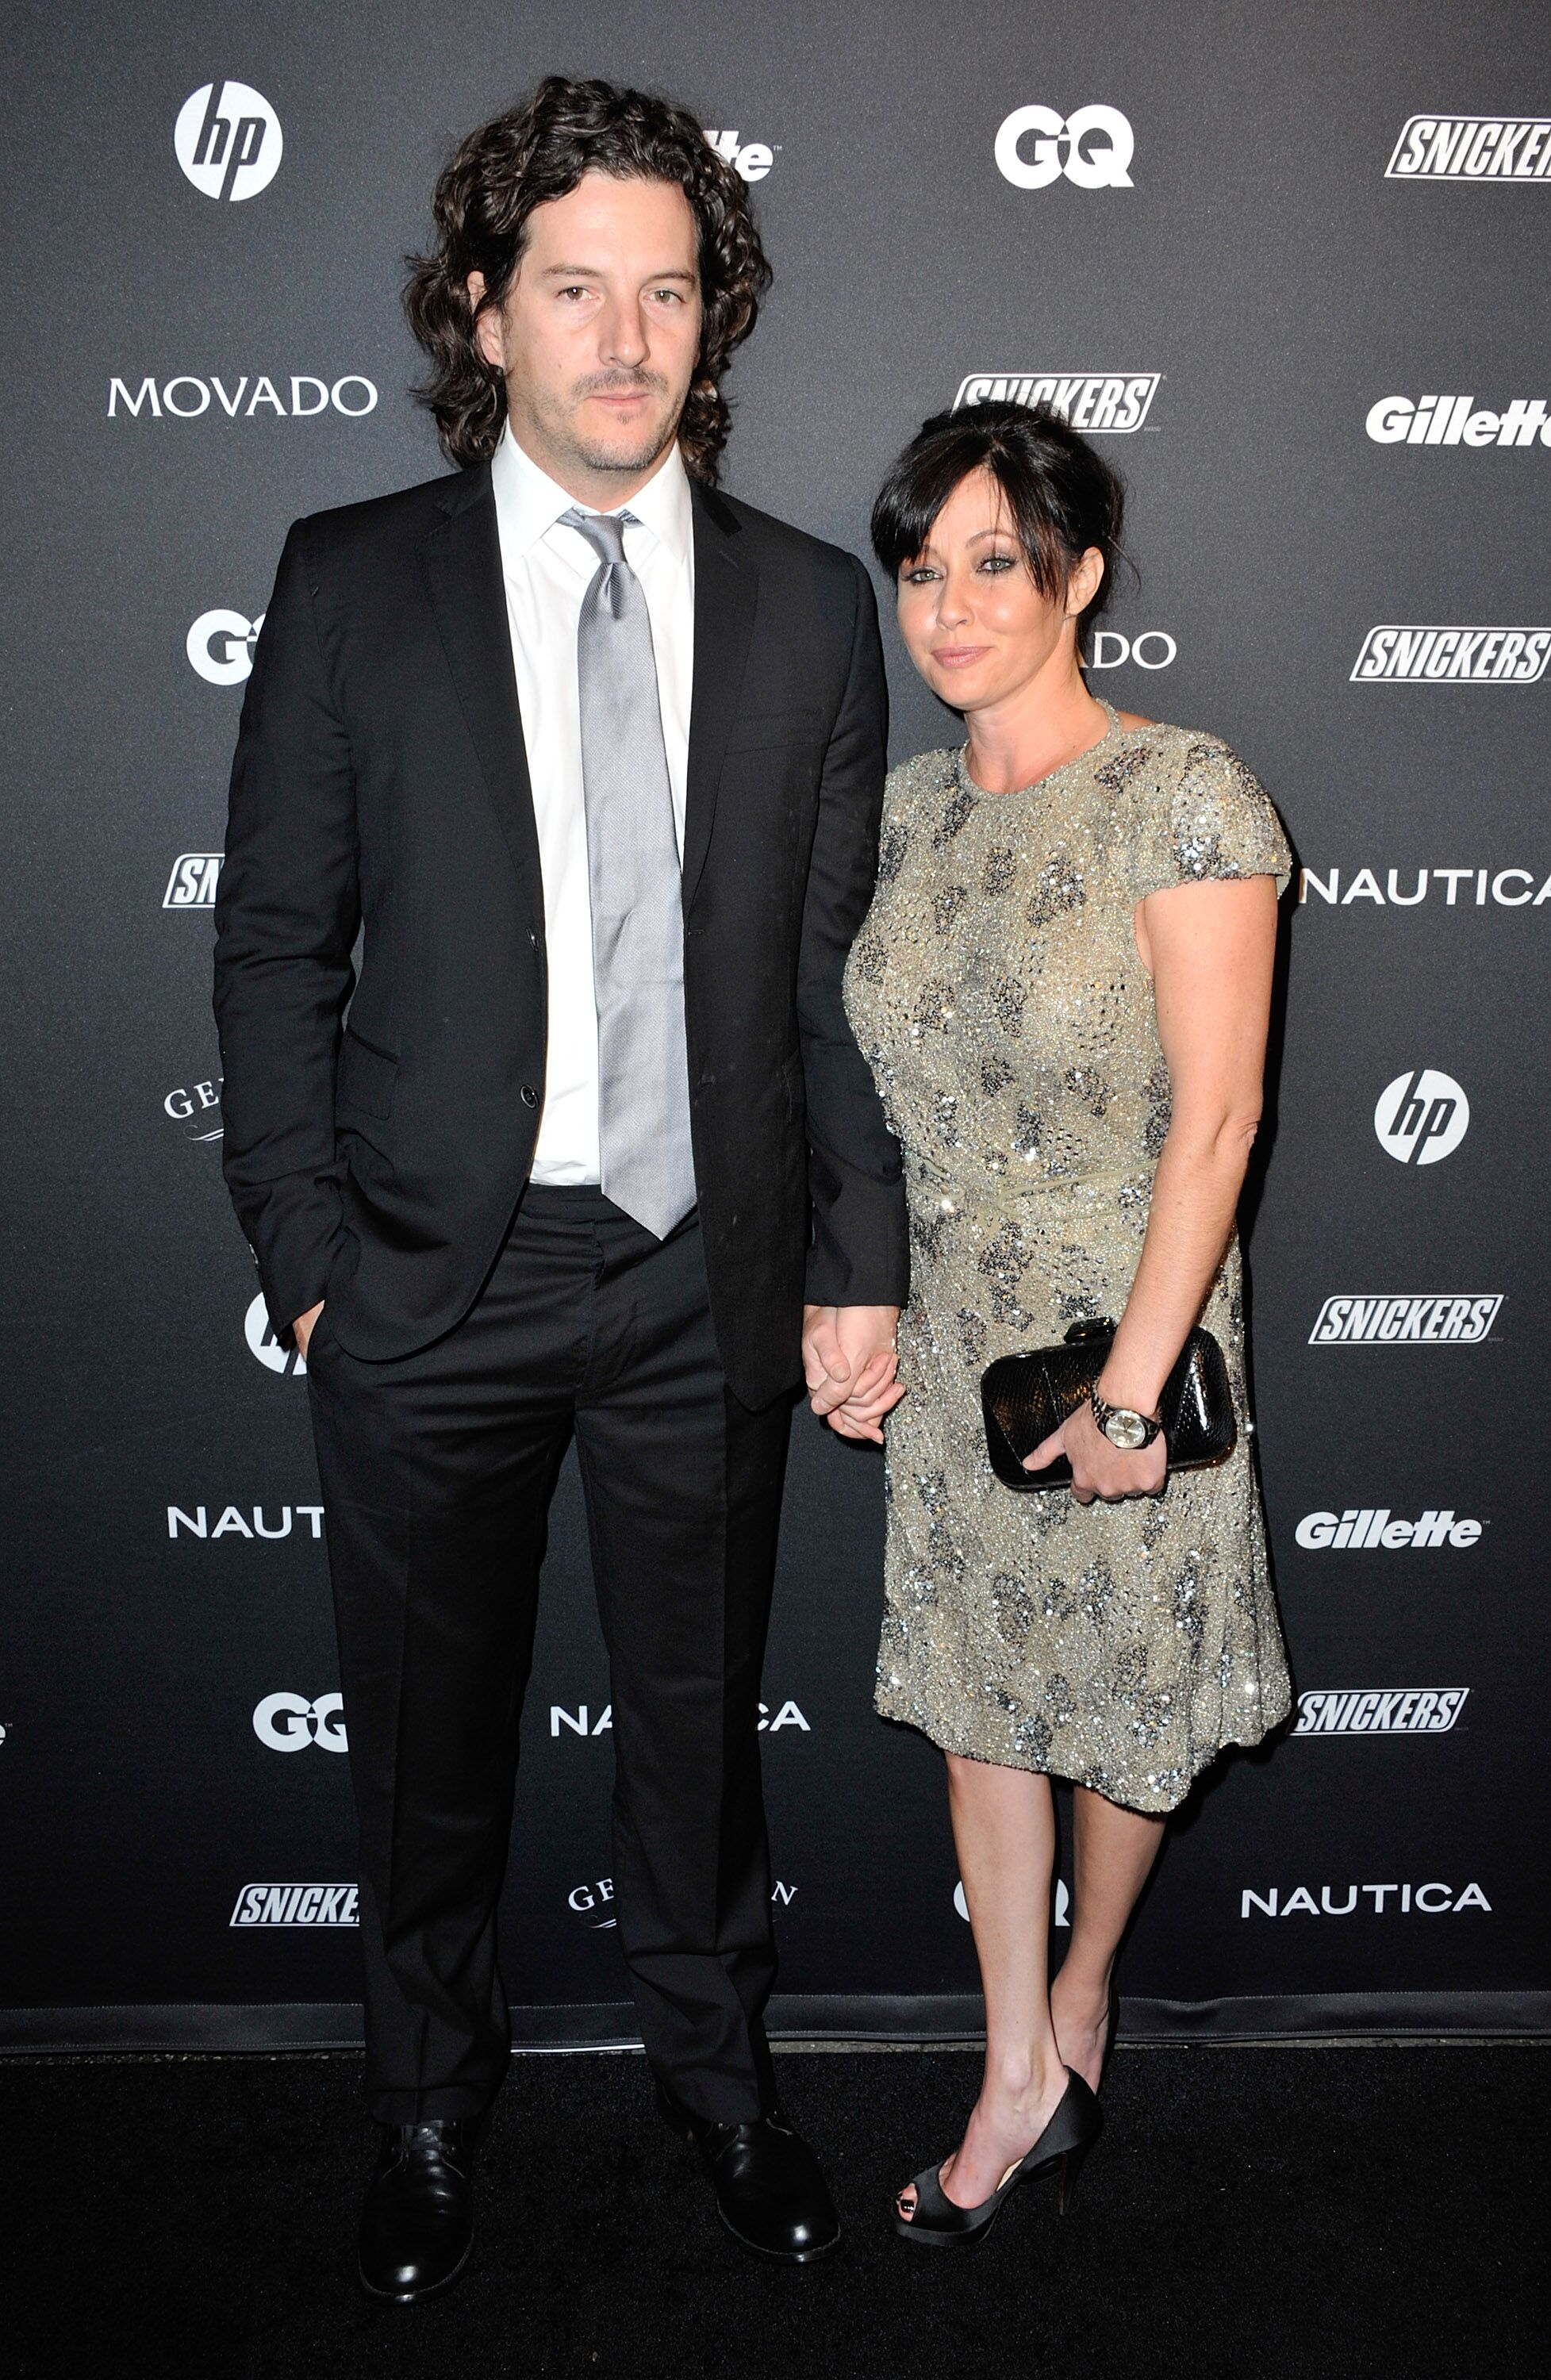 Shannen Doherty and husband Kurt Iswarienko in New York City in 2012 | Source: Getty Images